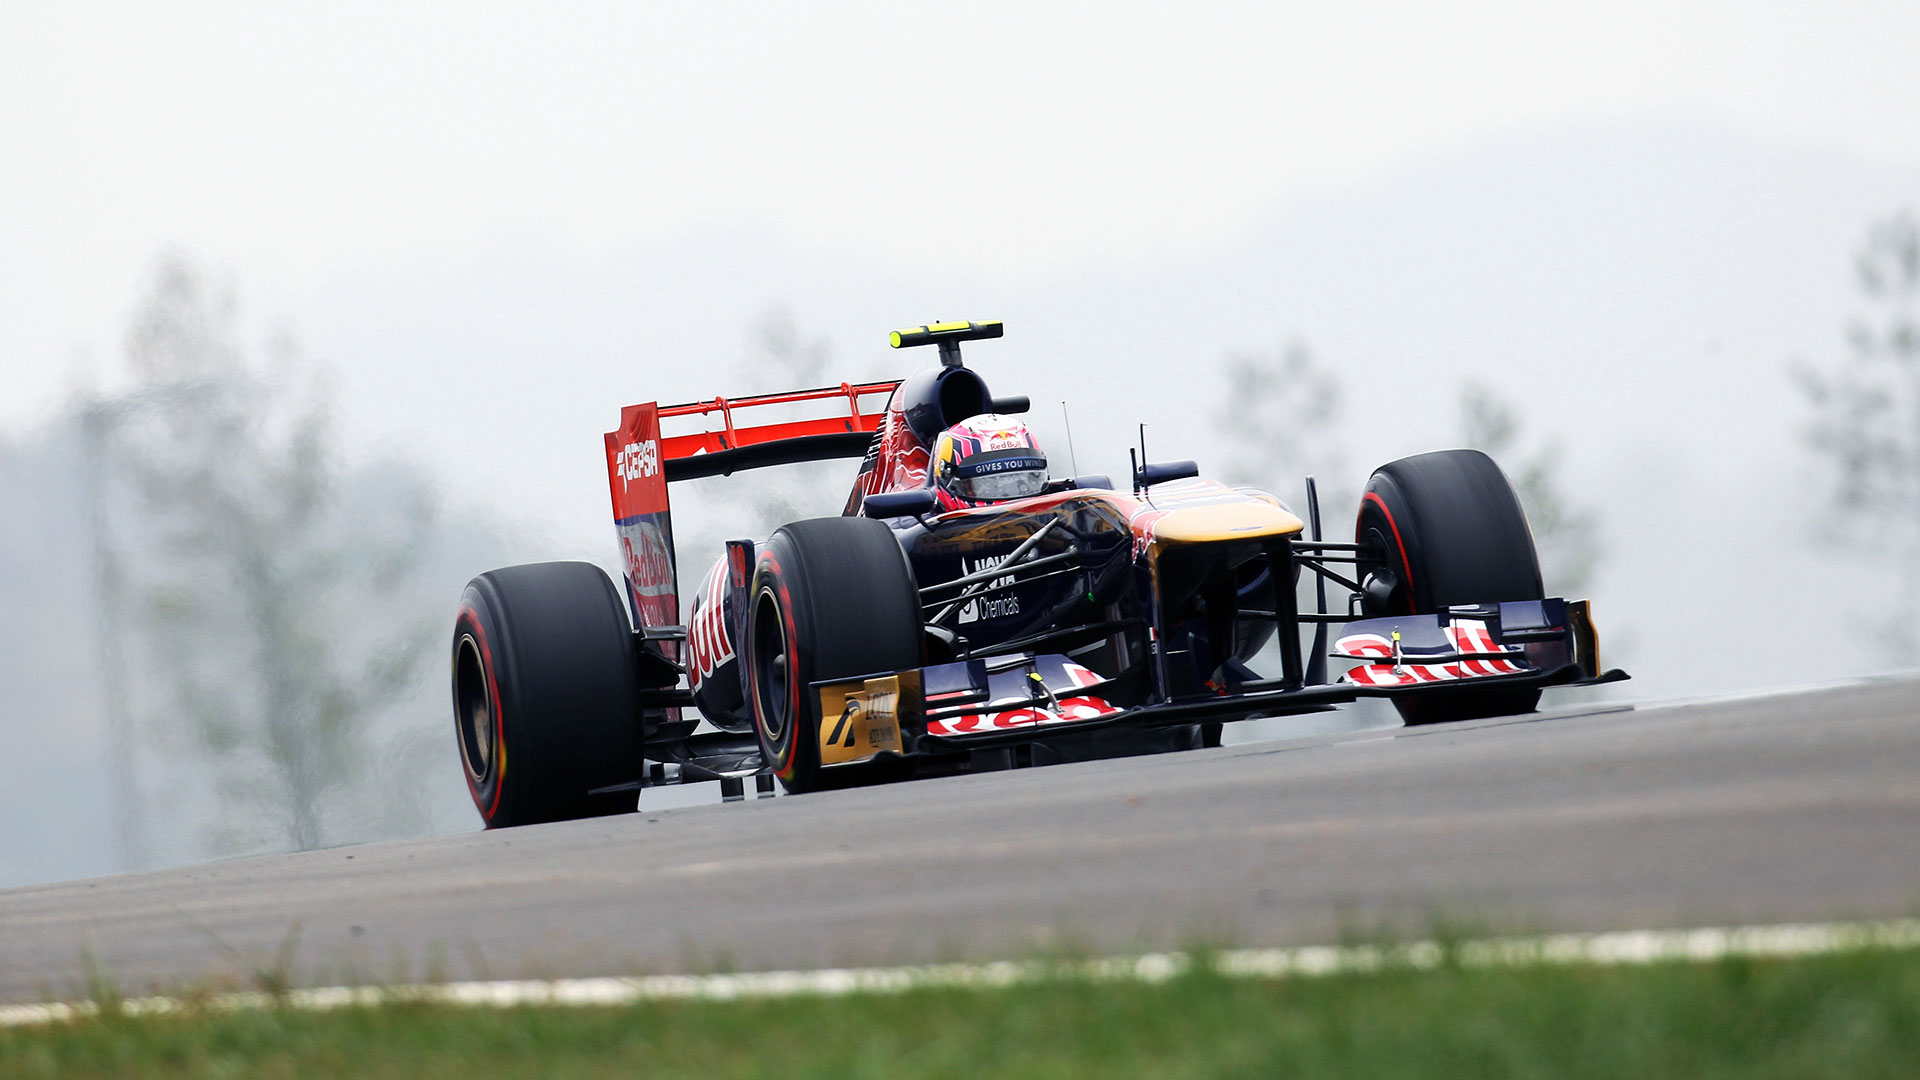 red bull str6 - photo #29